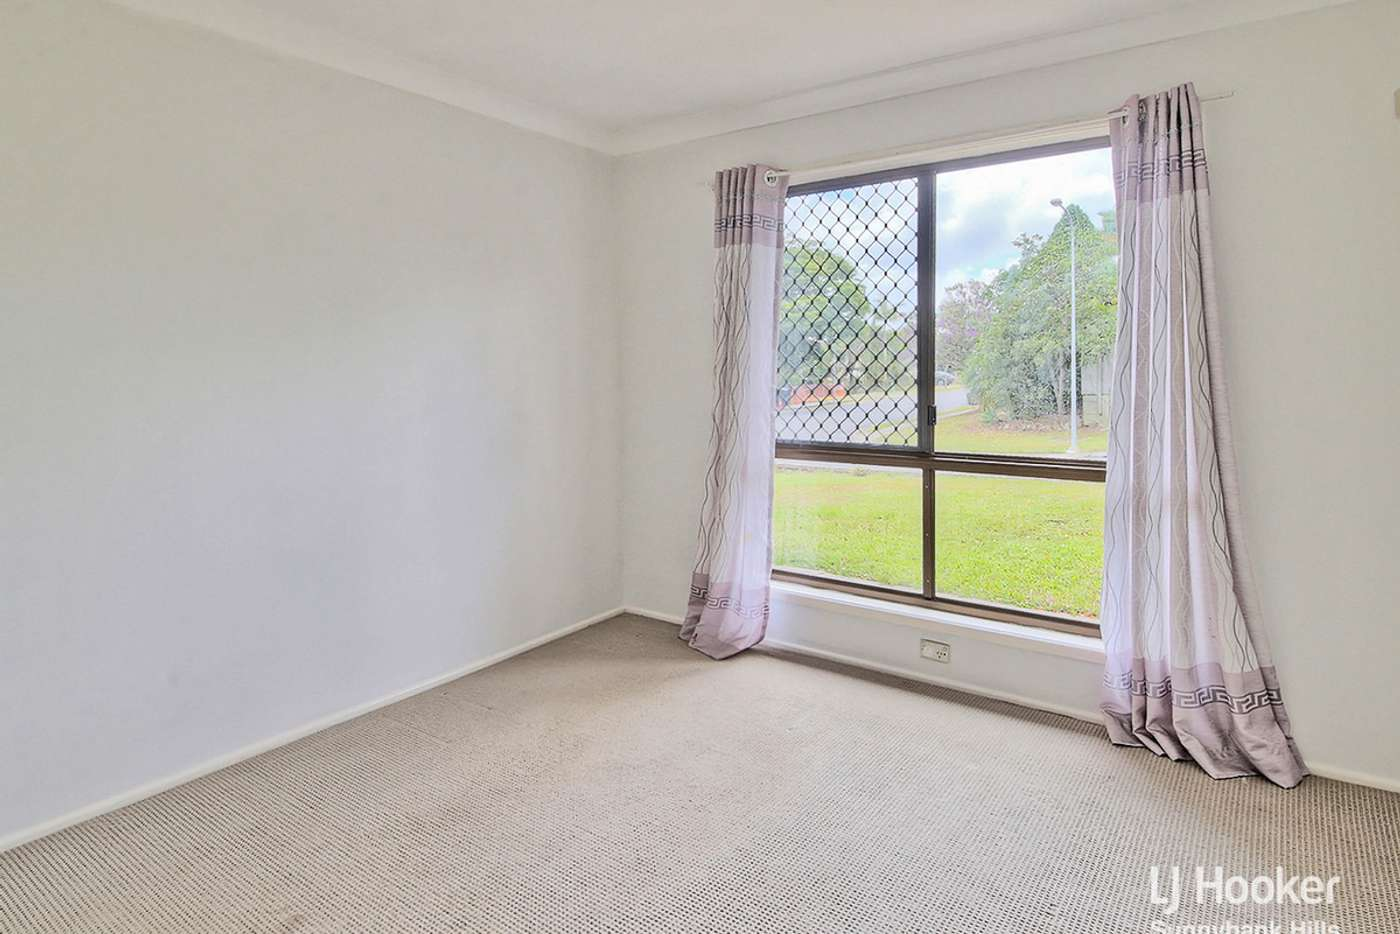 Fifth view of Homely house listing, 1 Fairmont Street, Runcorn QLD 4113